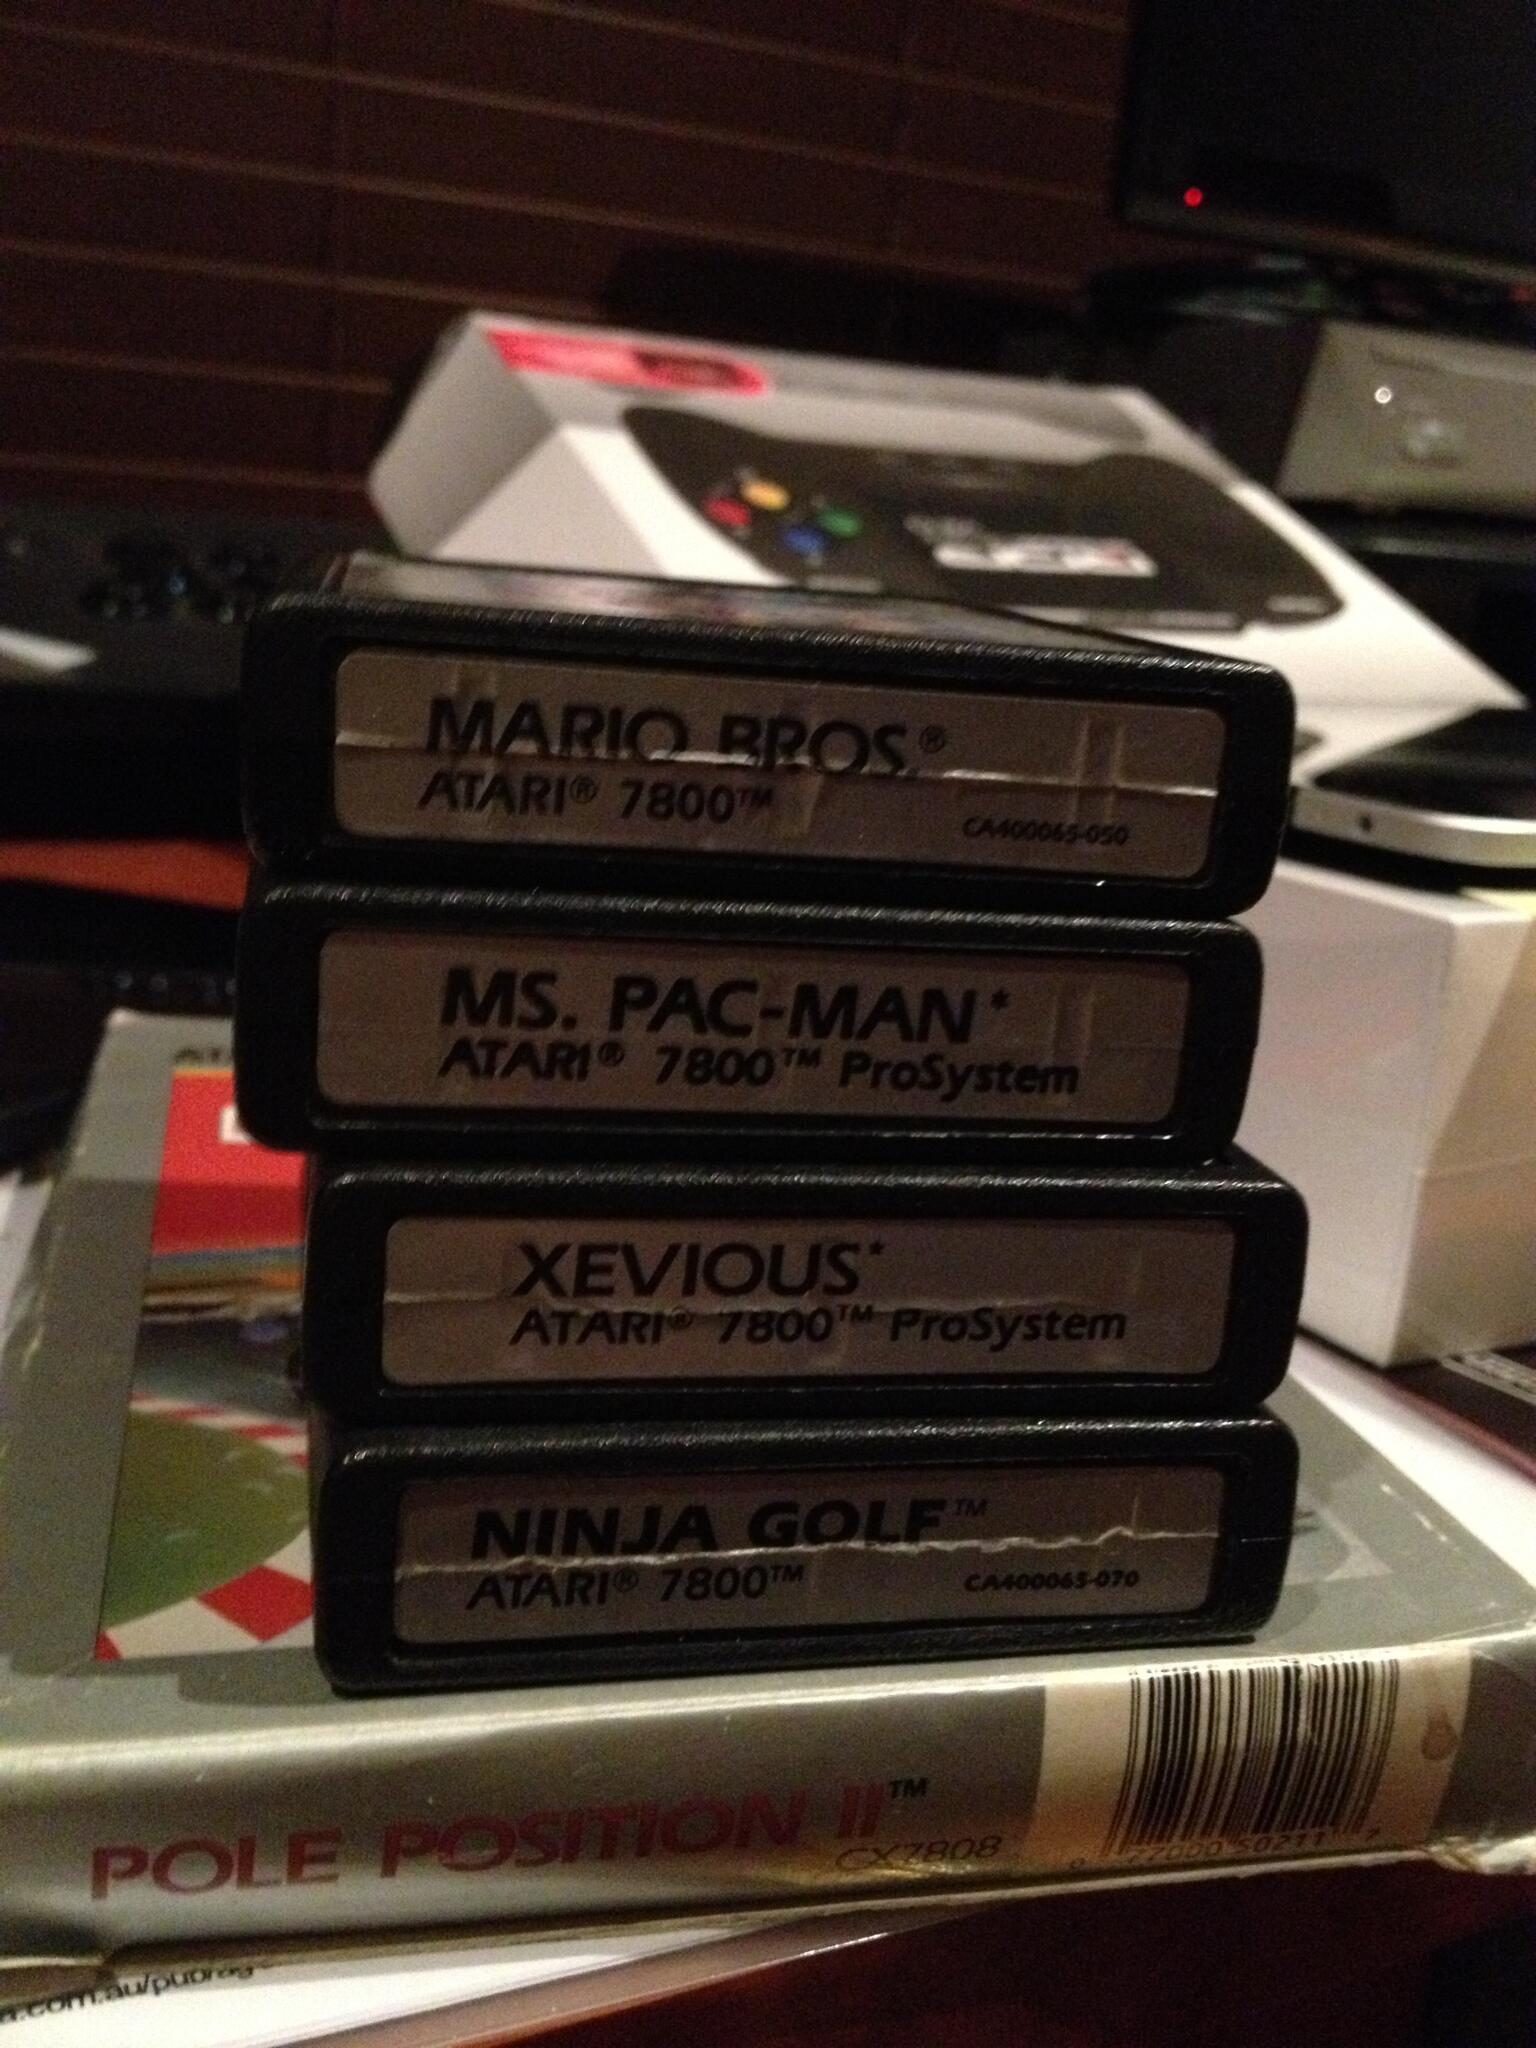 A stack of Atari 7800 games to 'test' ;-) #retrogaming #Atari http://t.co/jSooq7OyD1